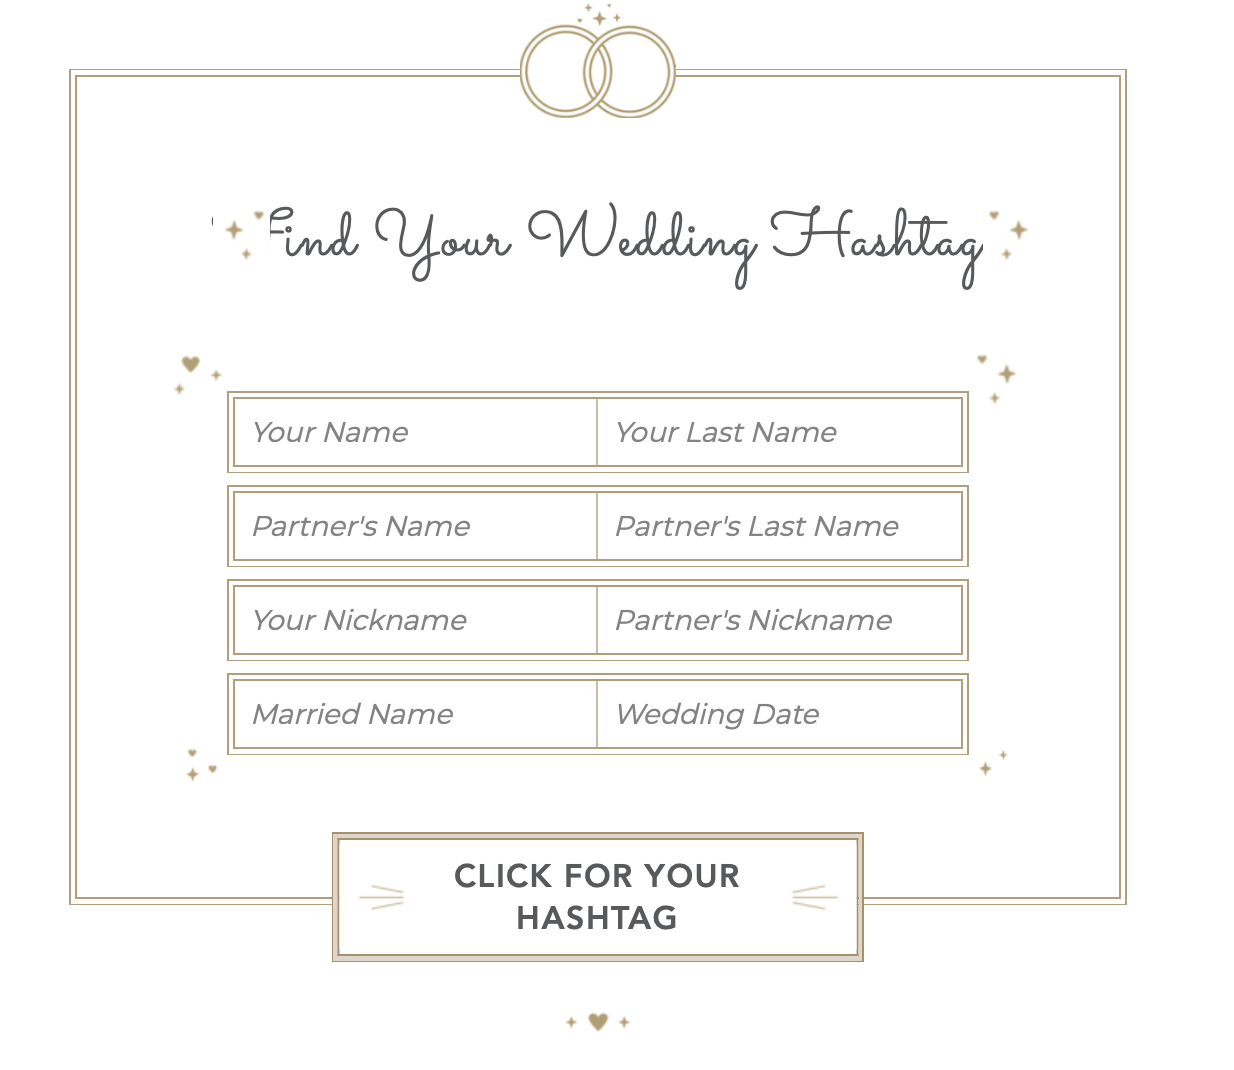 Find Your Wedding Hashtag